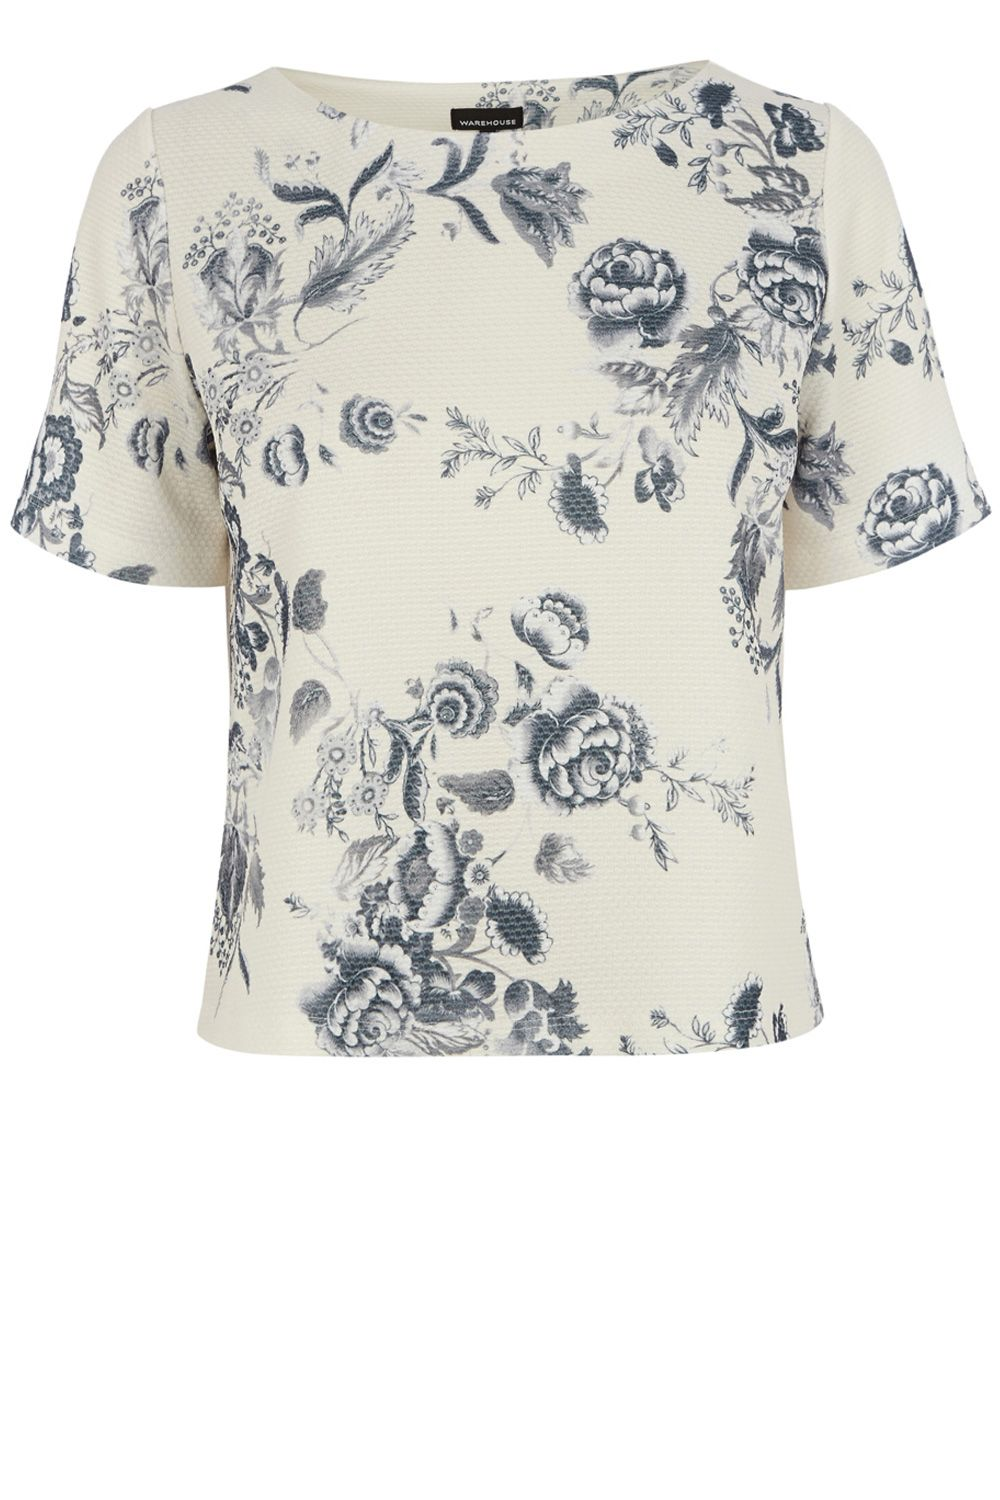 Drawn floral print co-ord top